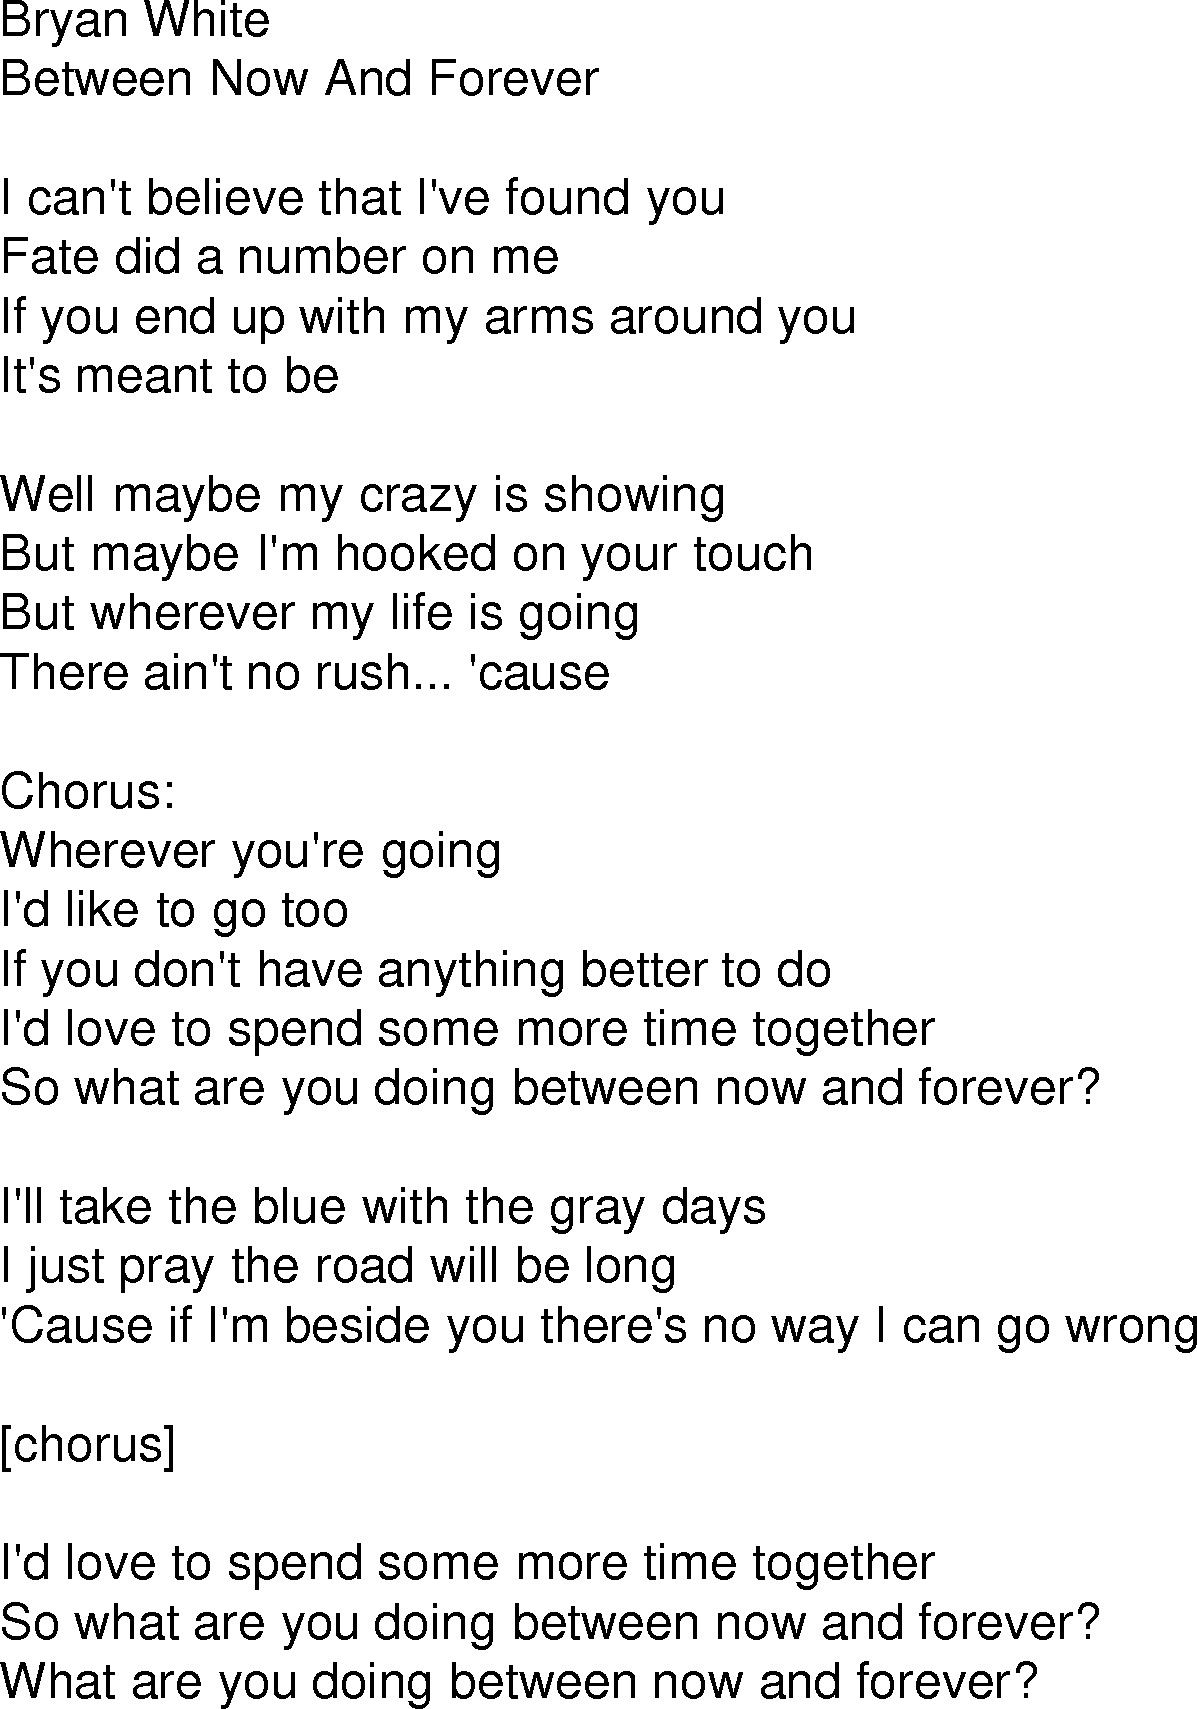 Folk Lyrics For Between Now And Forever By Bryan White